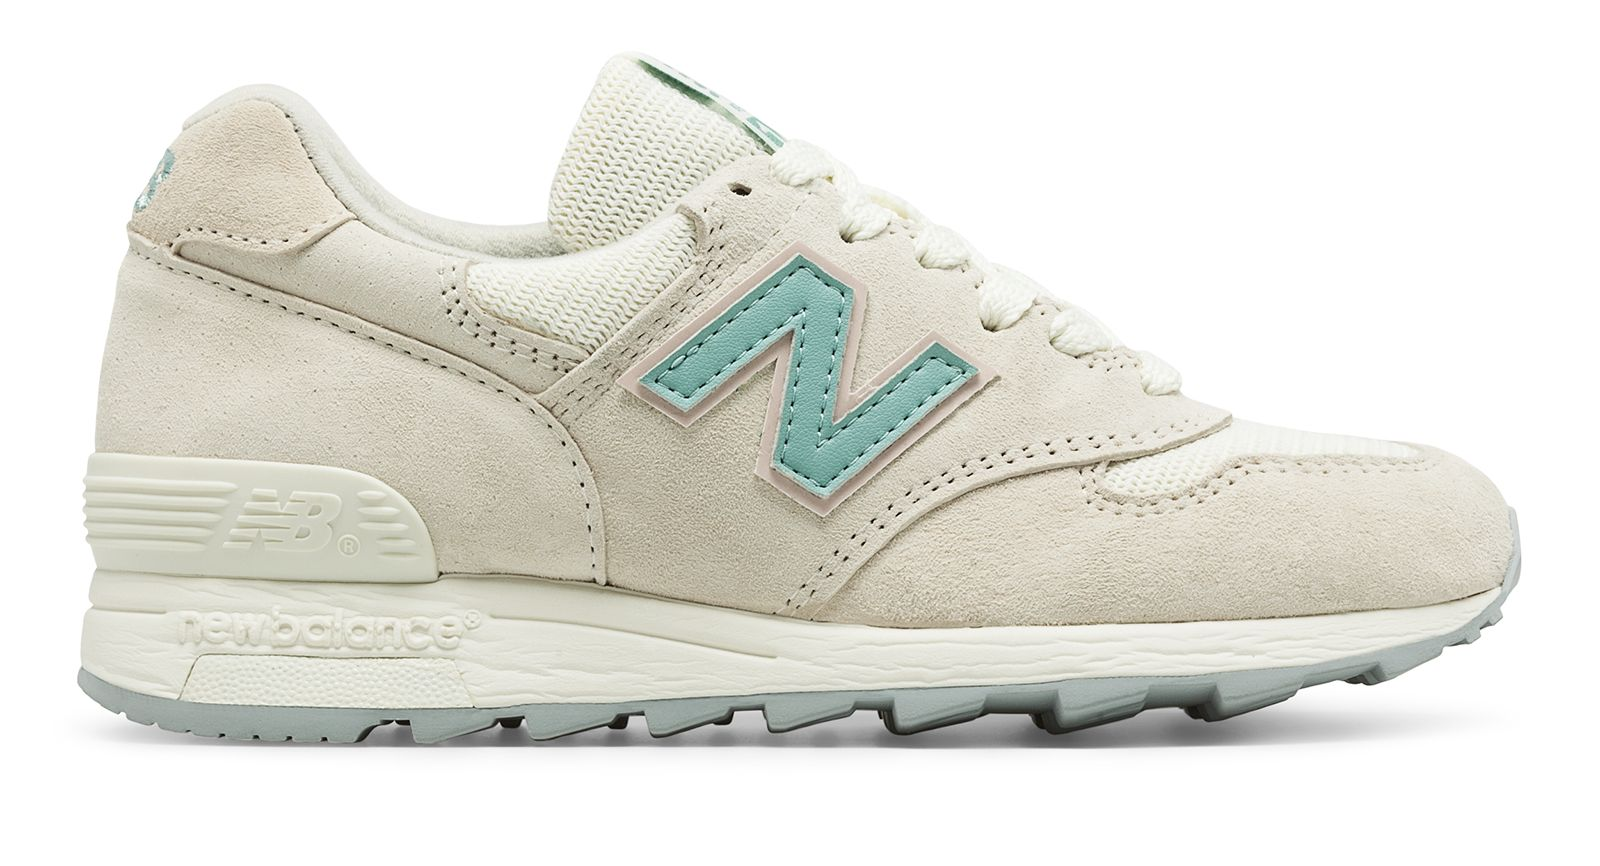 NB 1400 New Balance, Sea Salt with Storm Blue